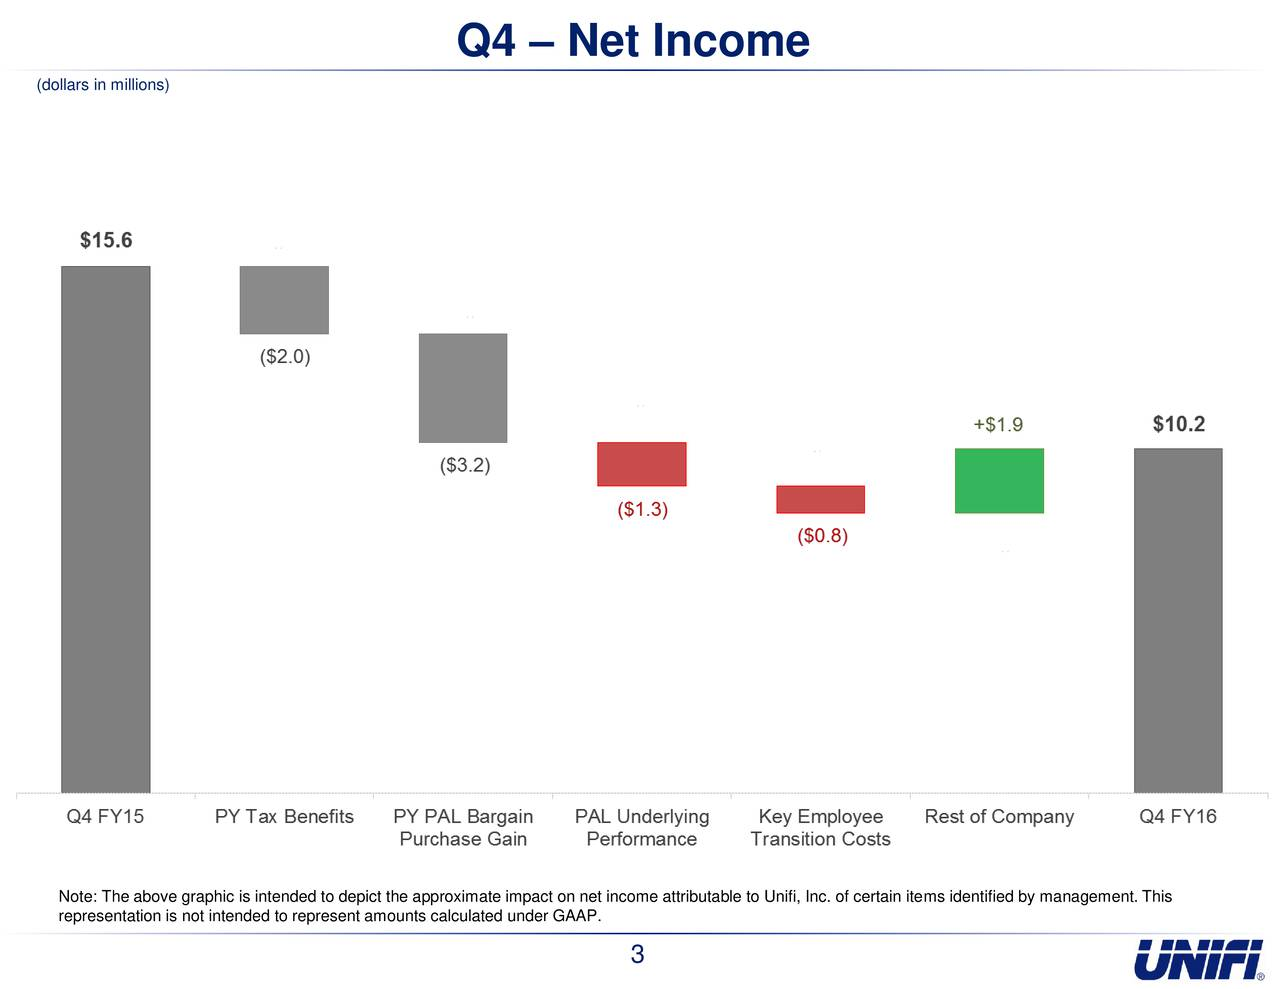 (dollars in millions) Note: The above graphic is intended to depict the approximate impact on net income attributable to Unifi, Inc. of certain items identified by management. This representation is not intended to represent amounts calculated under GAAP. 3